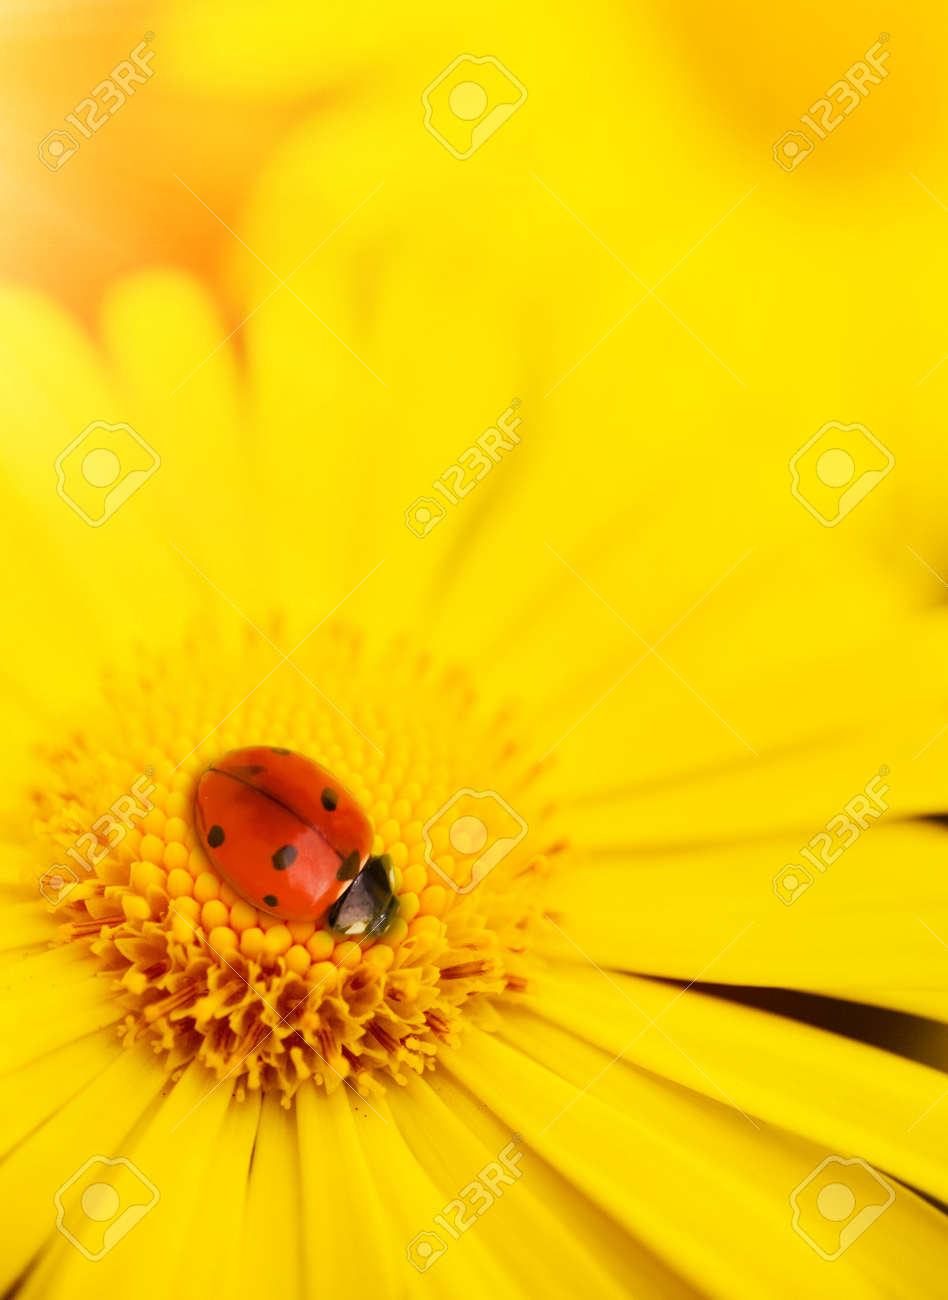 Small ladybug sleeping on yellow flower's petals Stock Photo - 4843605